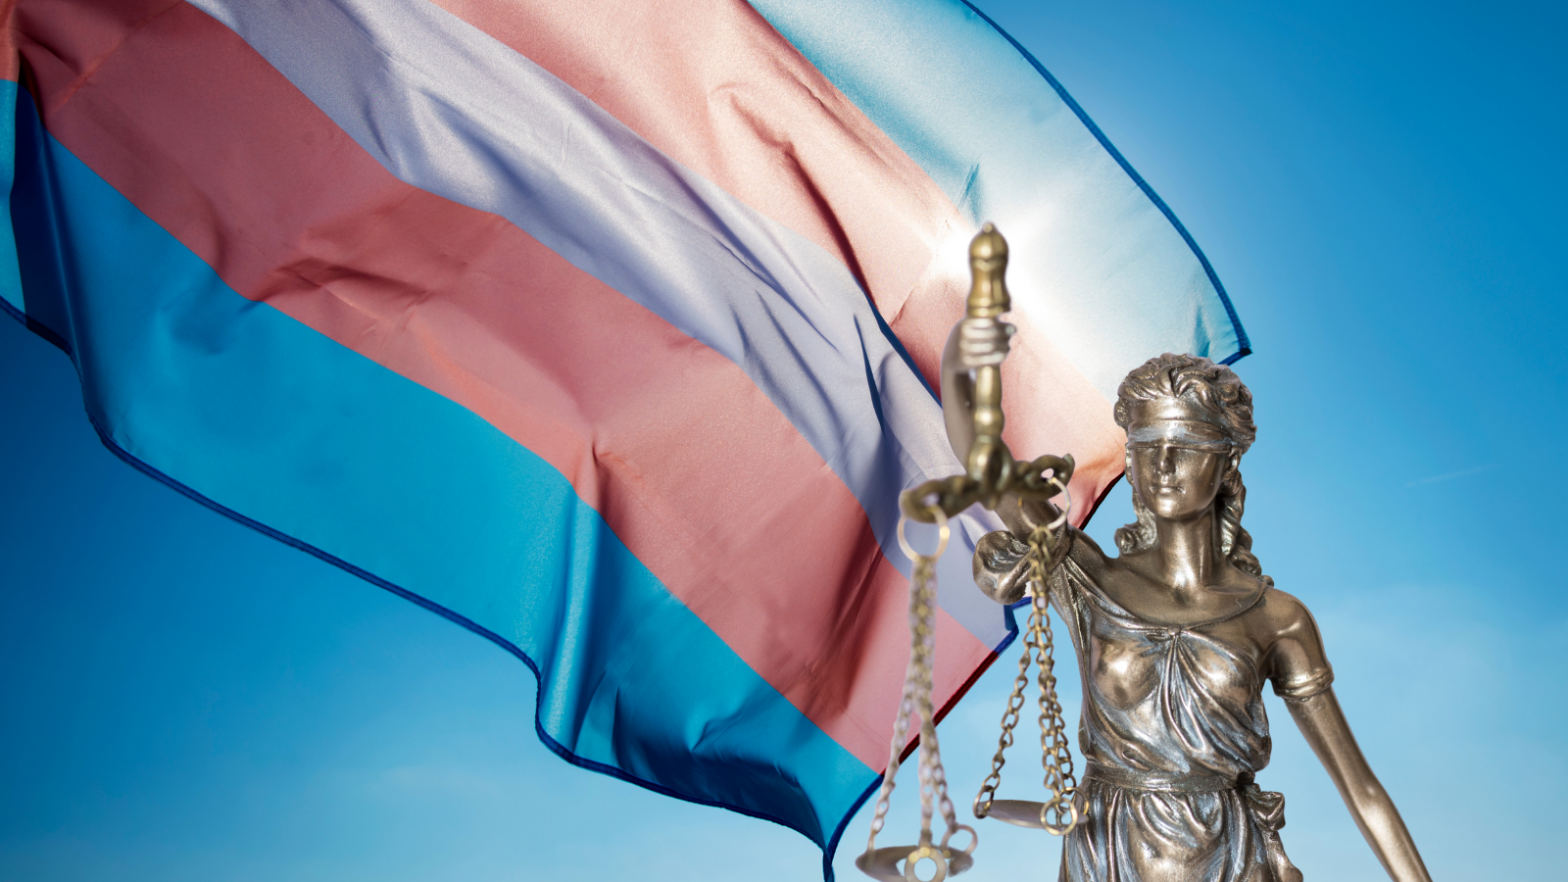 How Can We Improve the Criminal Justice System Response for Transgender Victims?